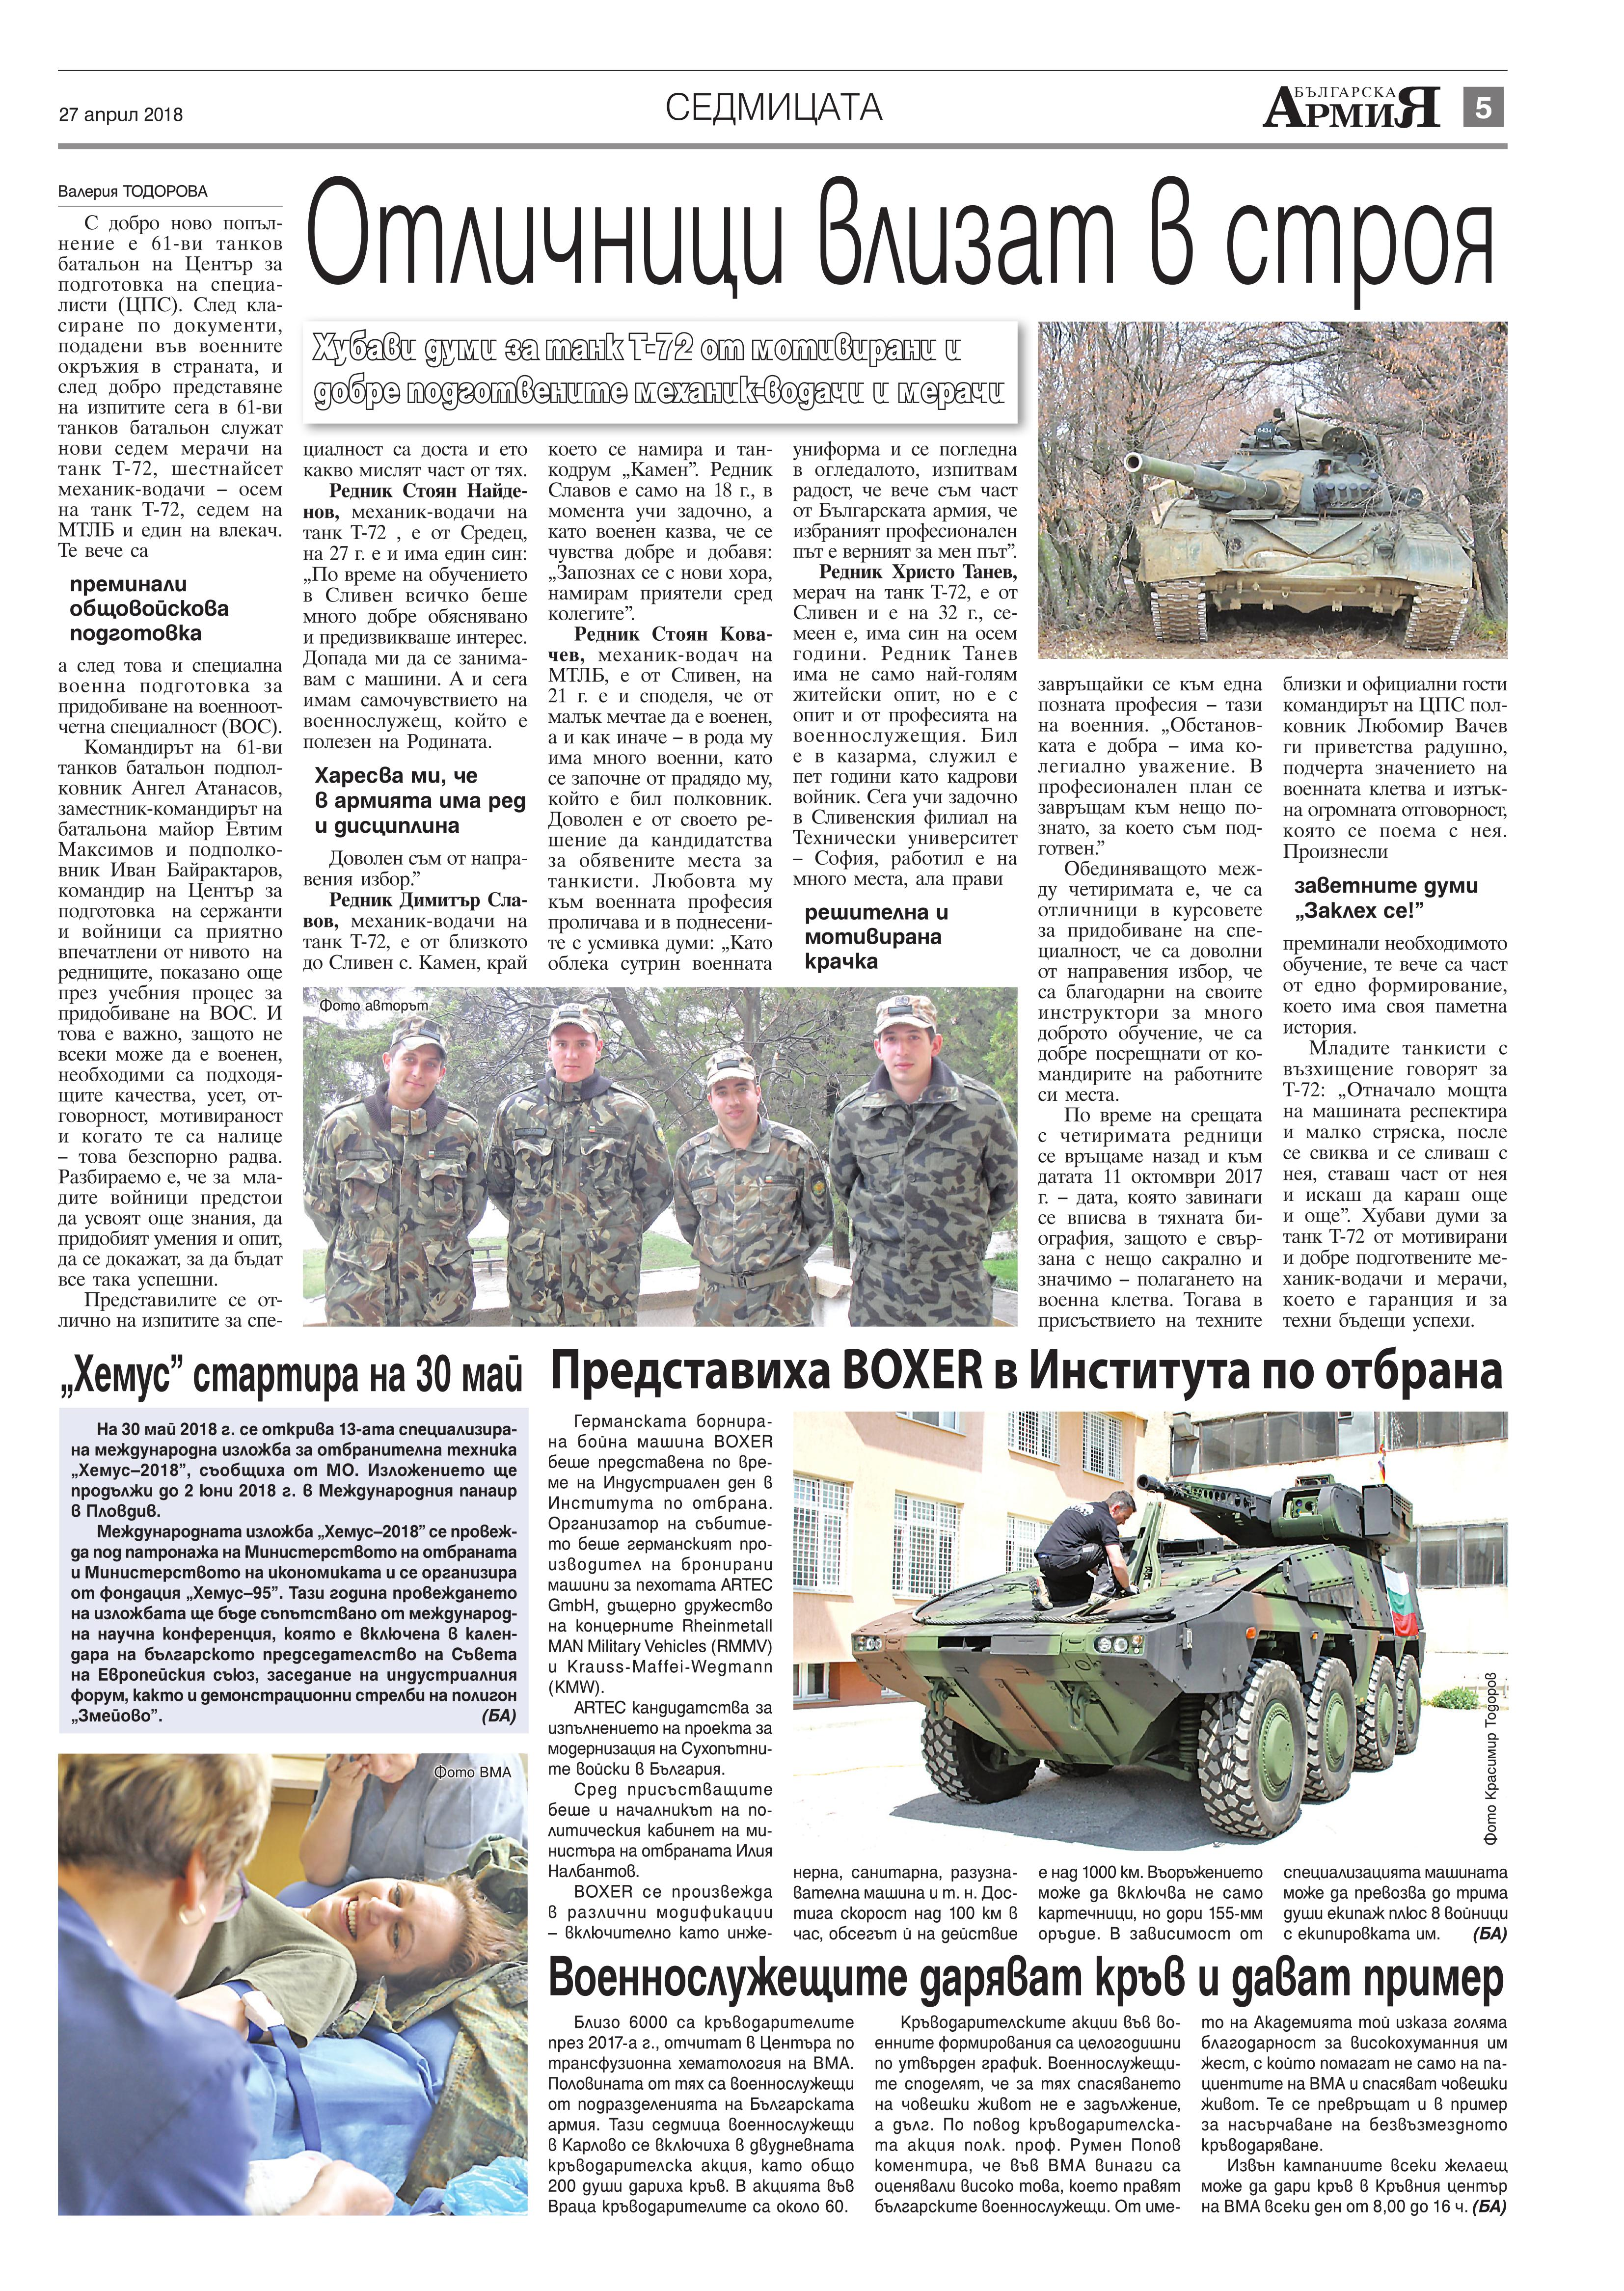 https://armymedia.bg/wp-content/uploads/2015/06/05.page1-Copy-2.jpg